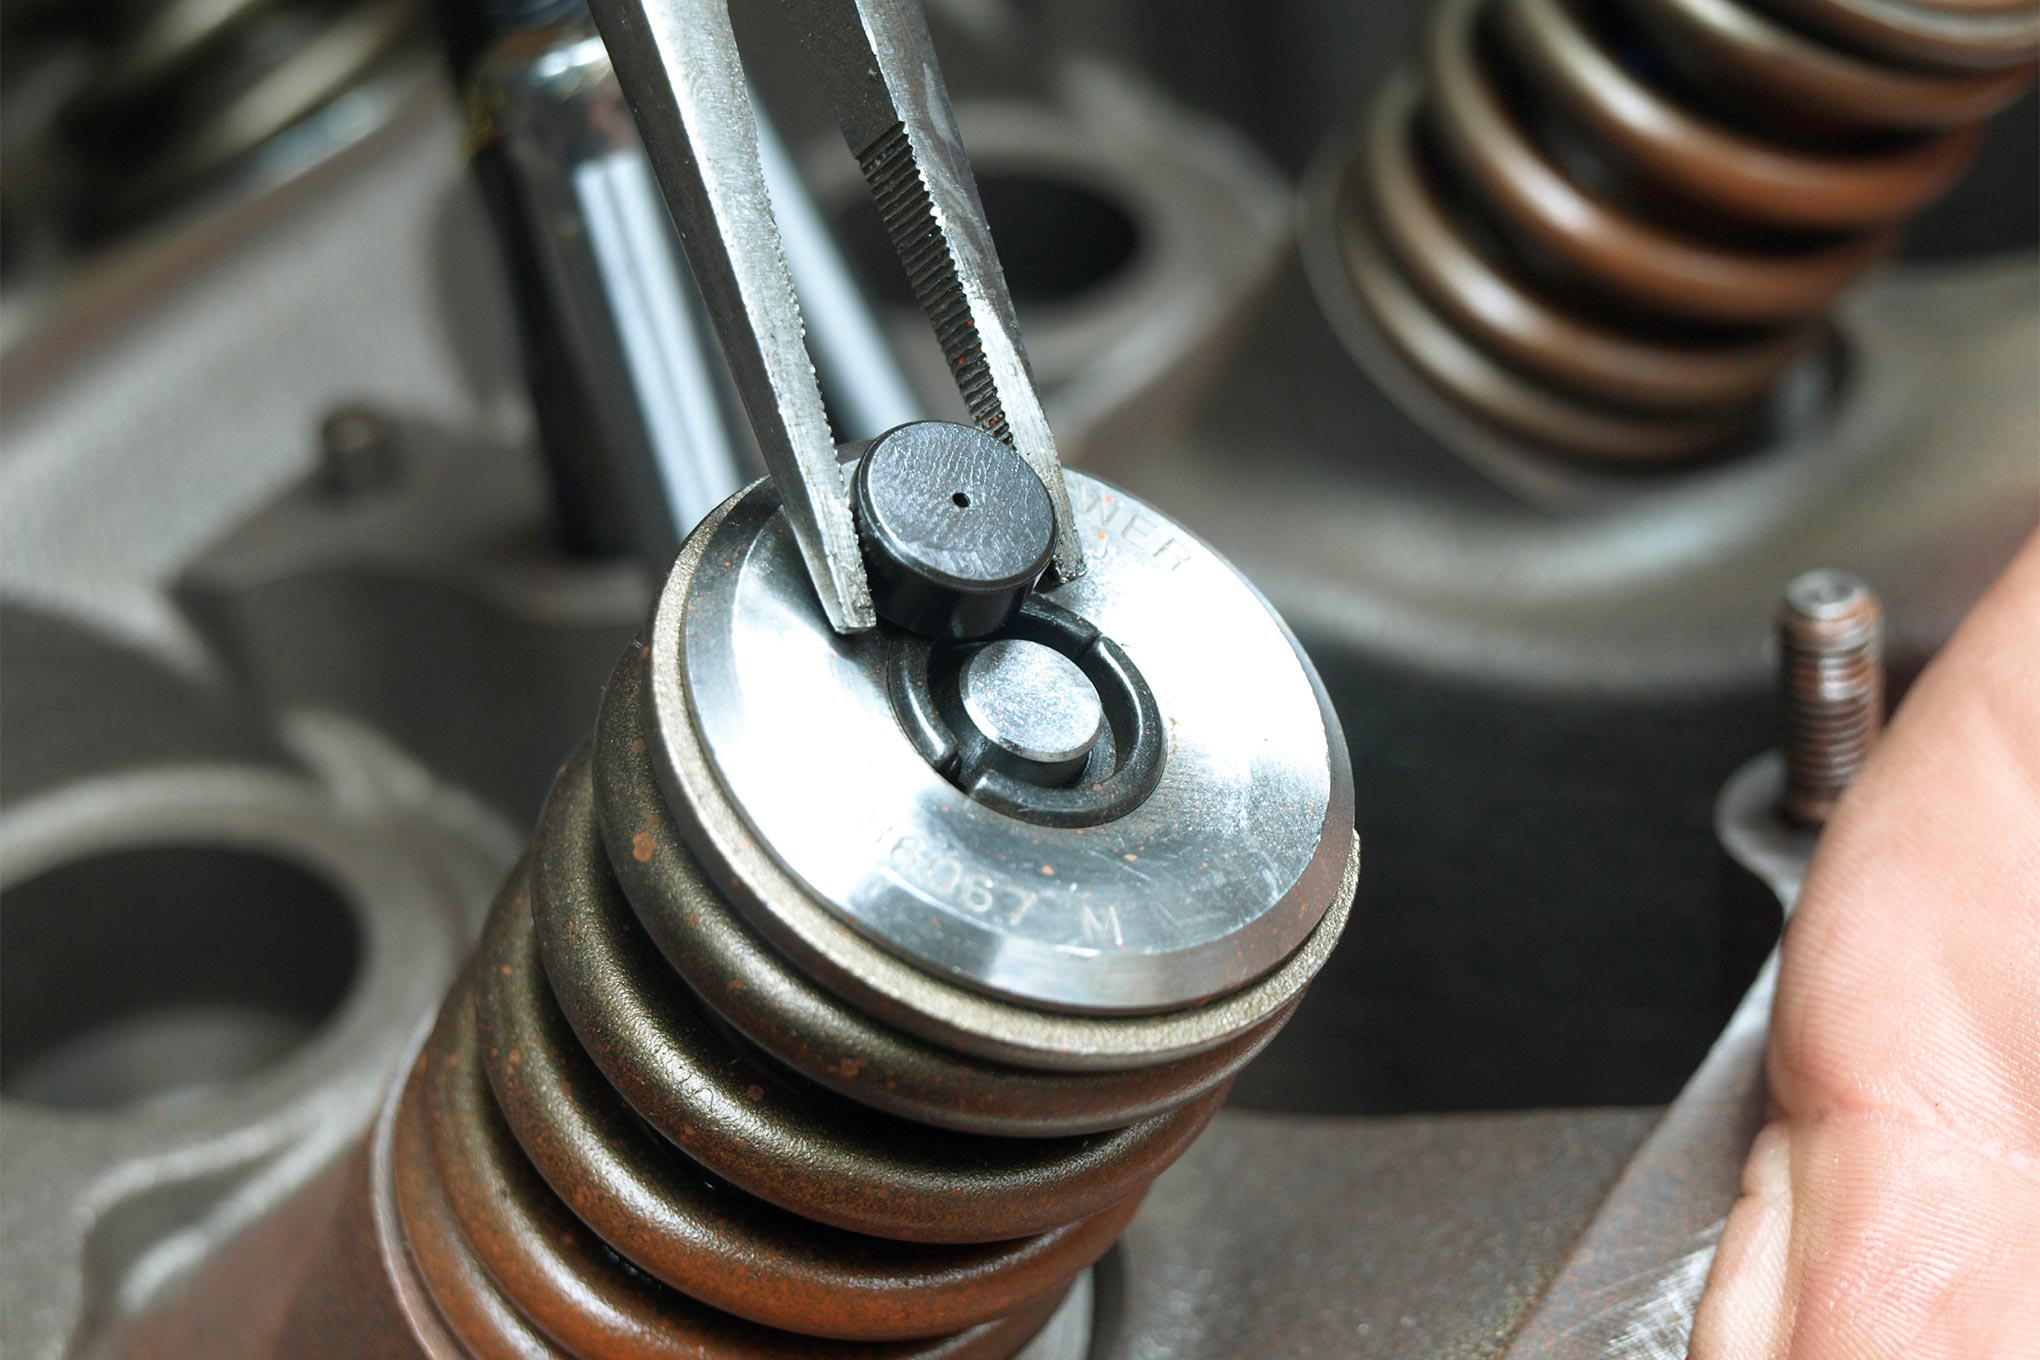 """Tom Hoover, Willem Weertman, and the rest of the 426 Hemi's """"fathers"""" trimmed valve mass by using 5/16 stems. Though rugged, lash caps are a smart addition to prevent tip wear with stiff roller-spec springs. Donnie replaced the M.P. moly retainers with titanium units from Comp."""